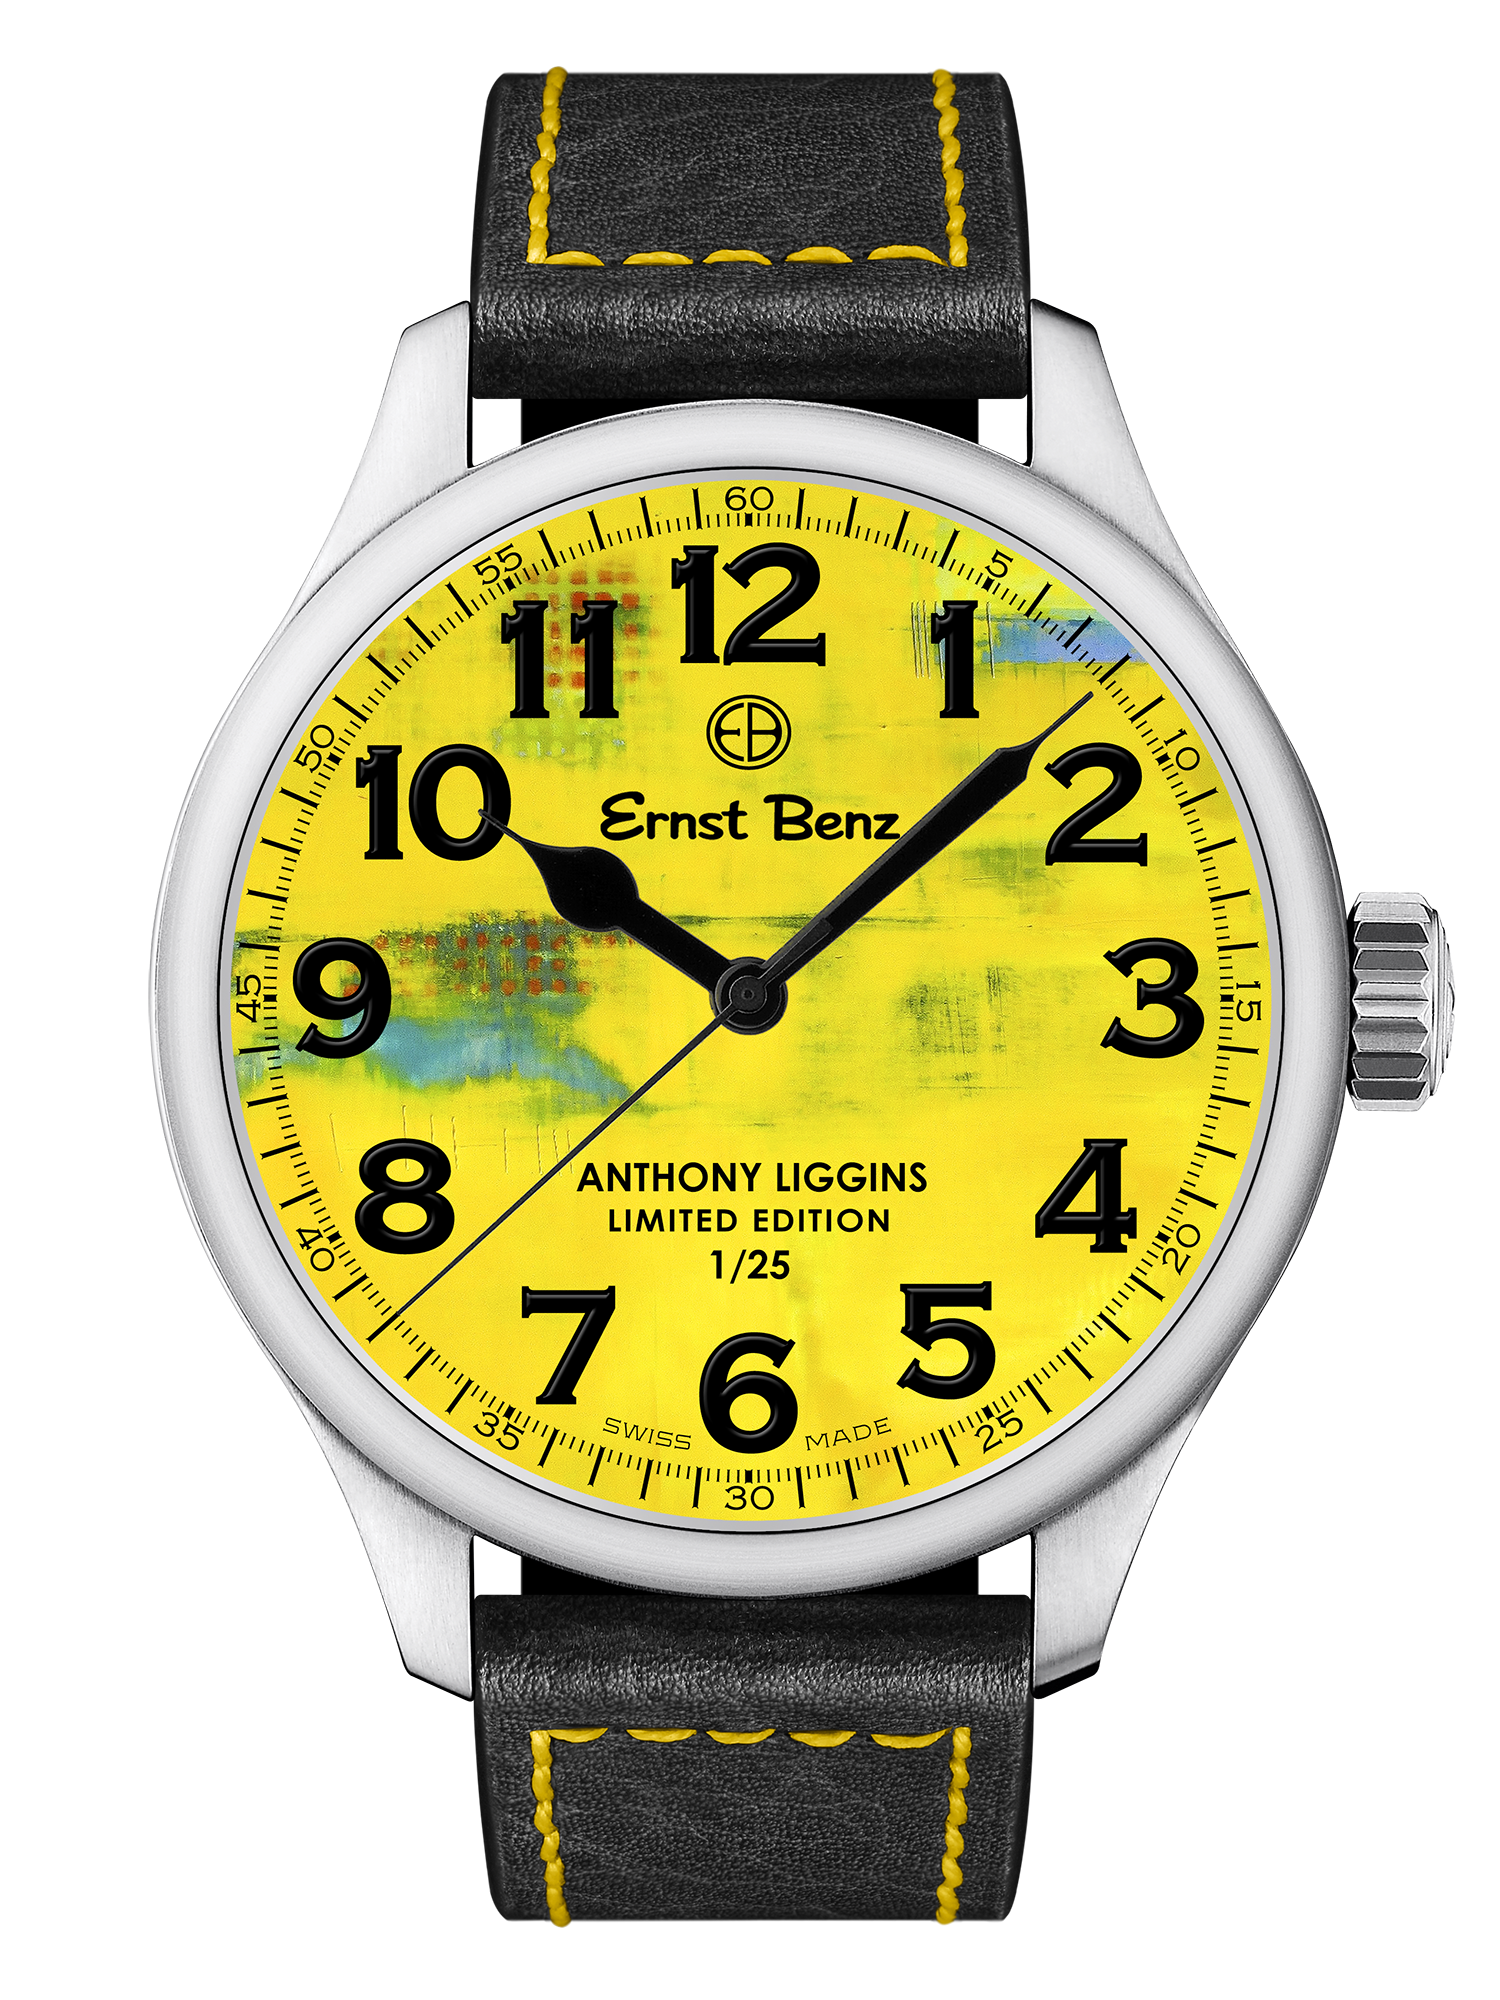 Ernst Benz Anthony Liggins Yellow Abstract Limited Edition 47mm Men's Watch GC10200/AL3